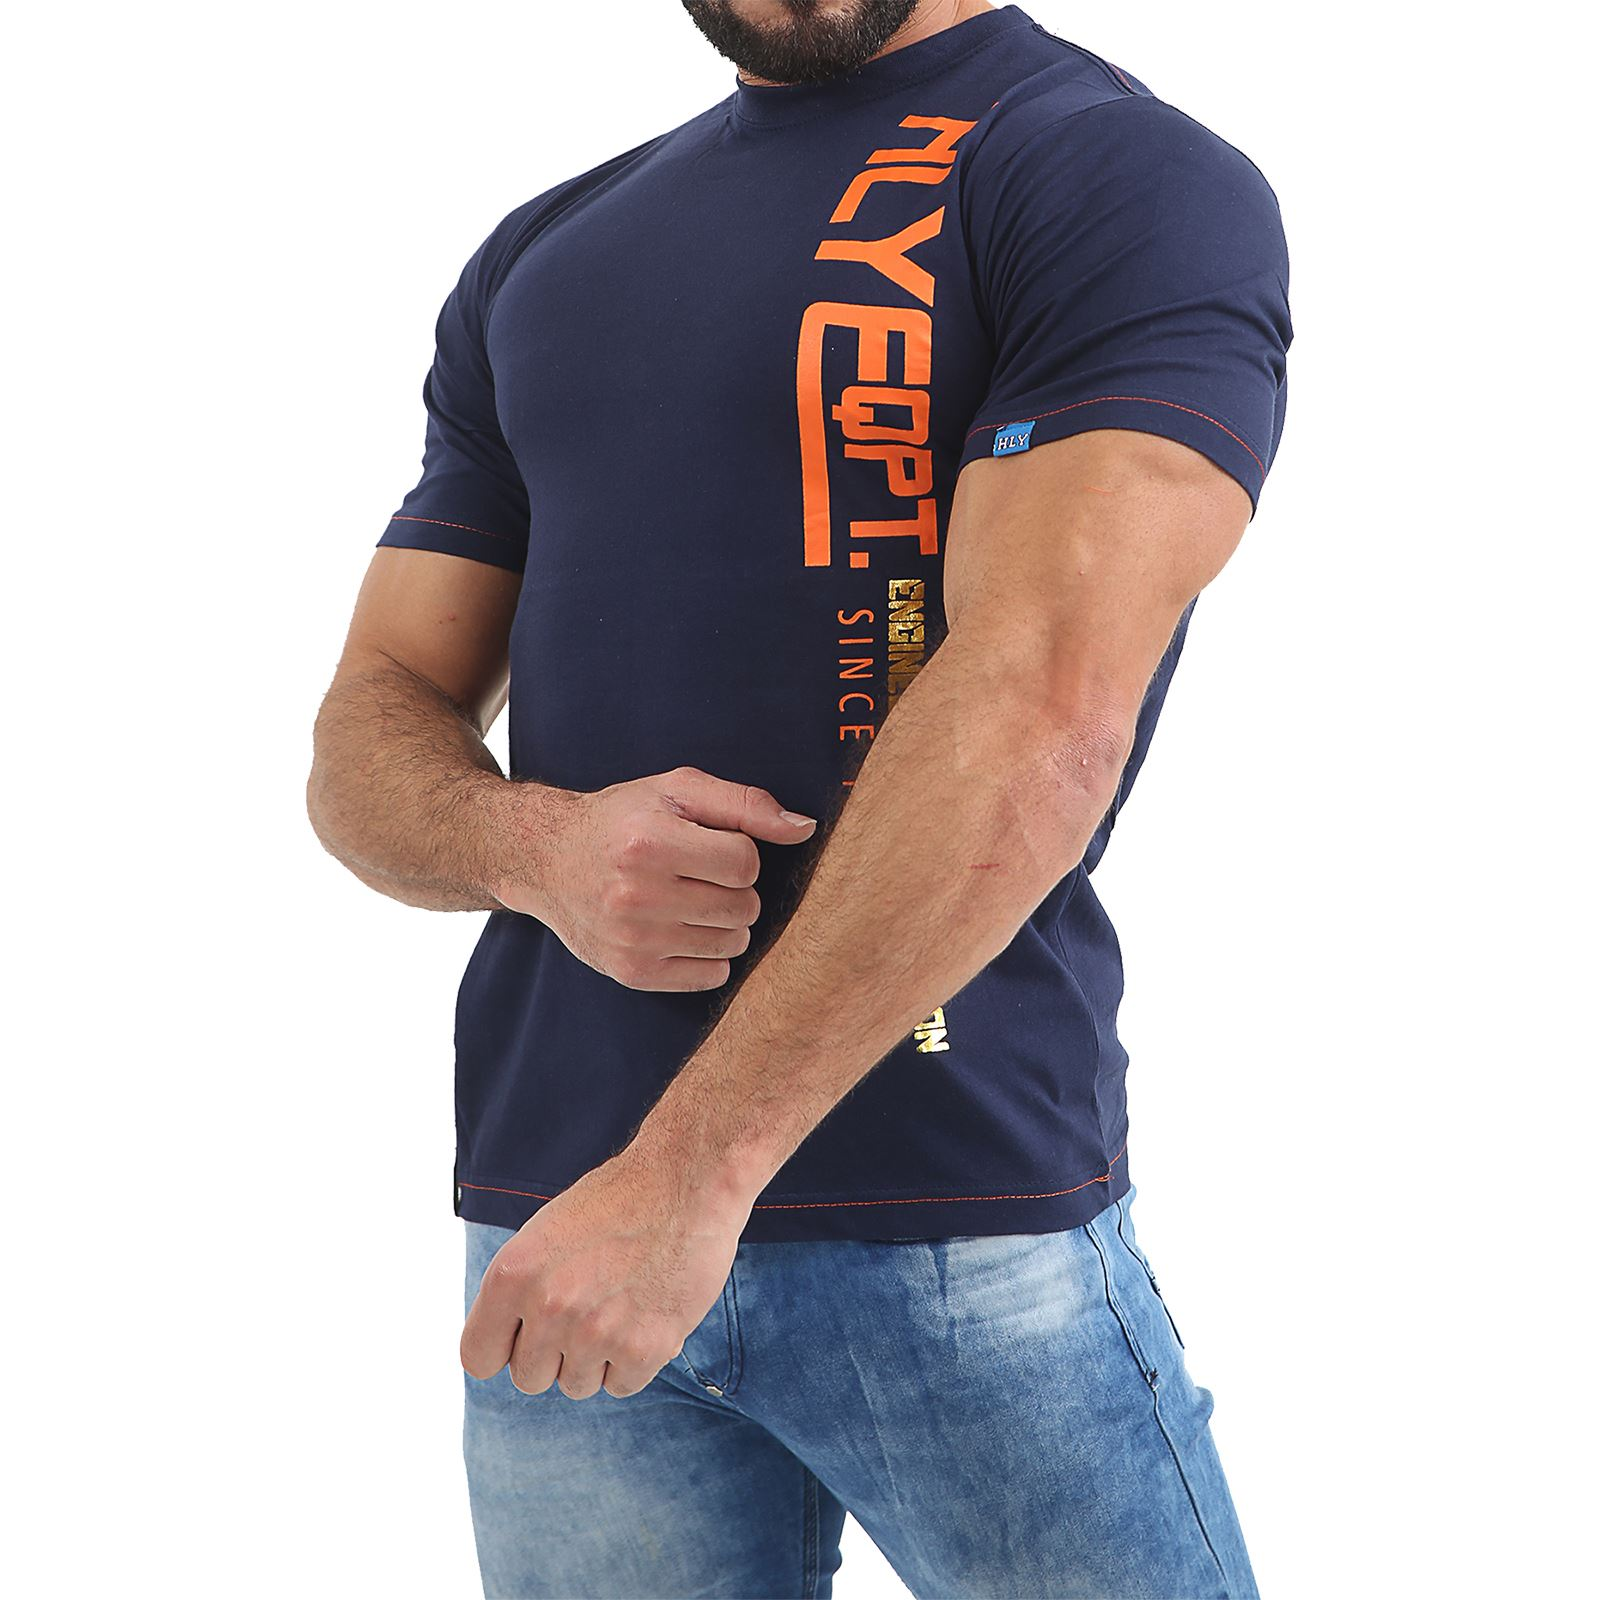 Mens-HLY-Printed-T-Shirt-100-Cotton-Gym-Athletic-Training-Tee-Top-Summer-New thumbnail 14